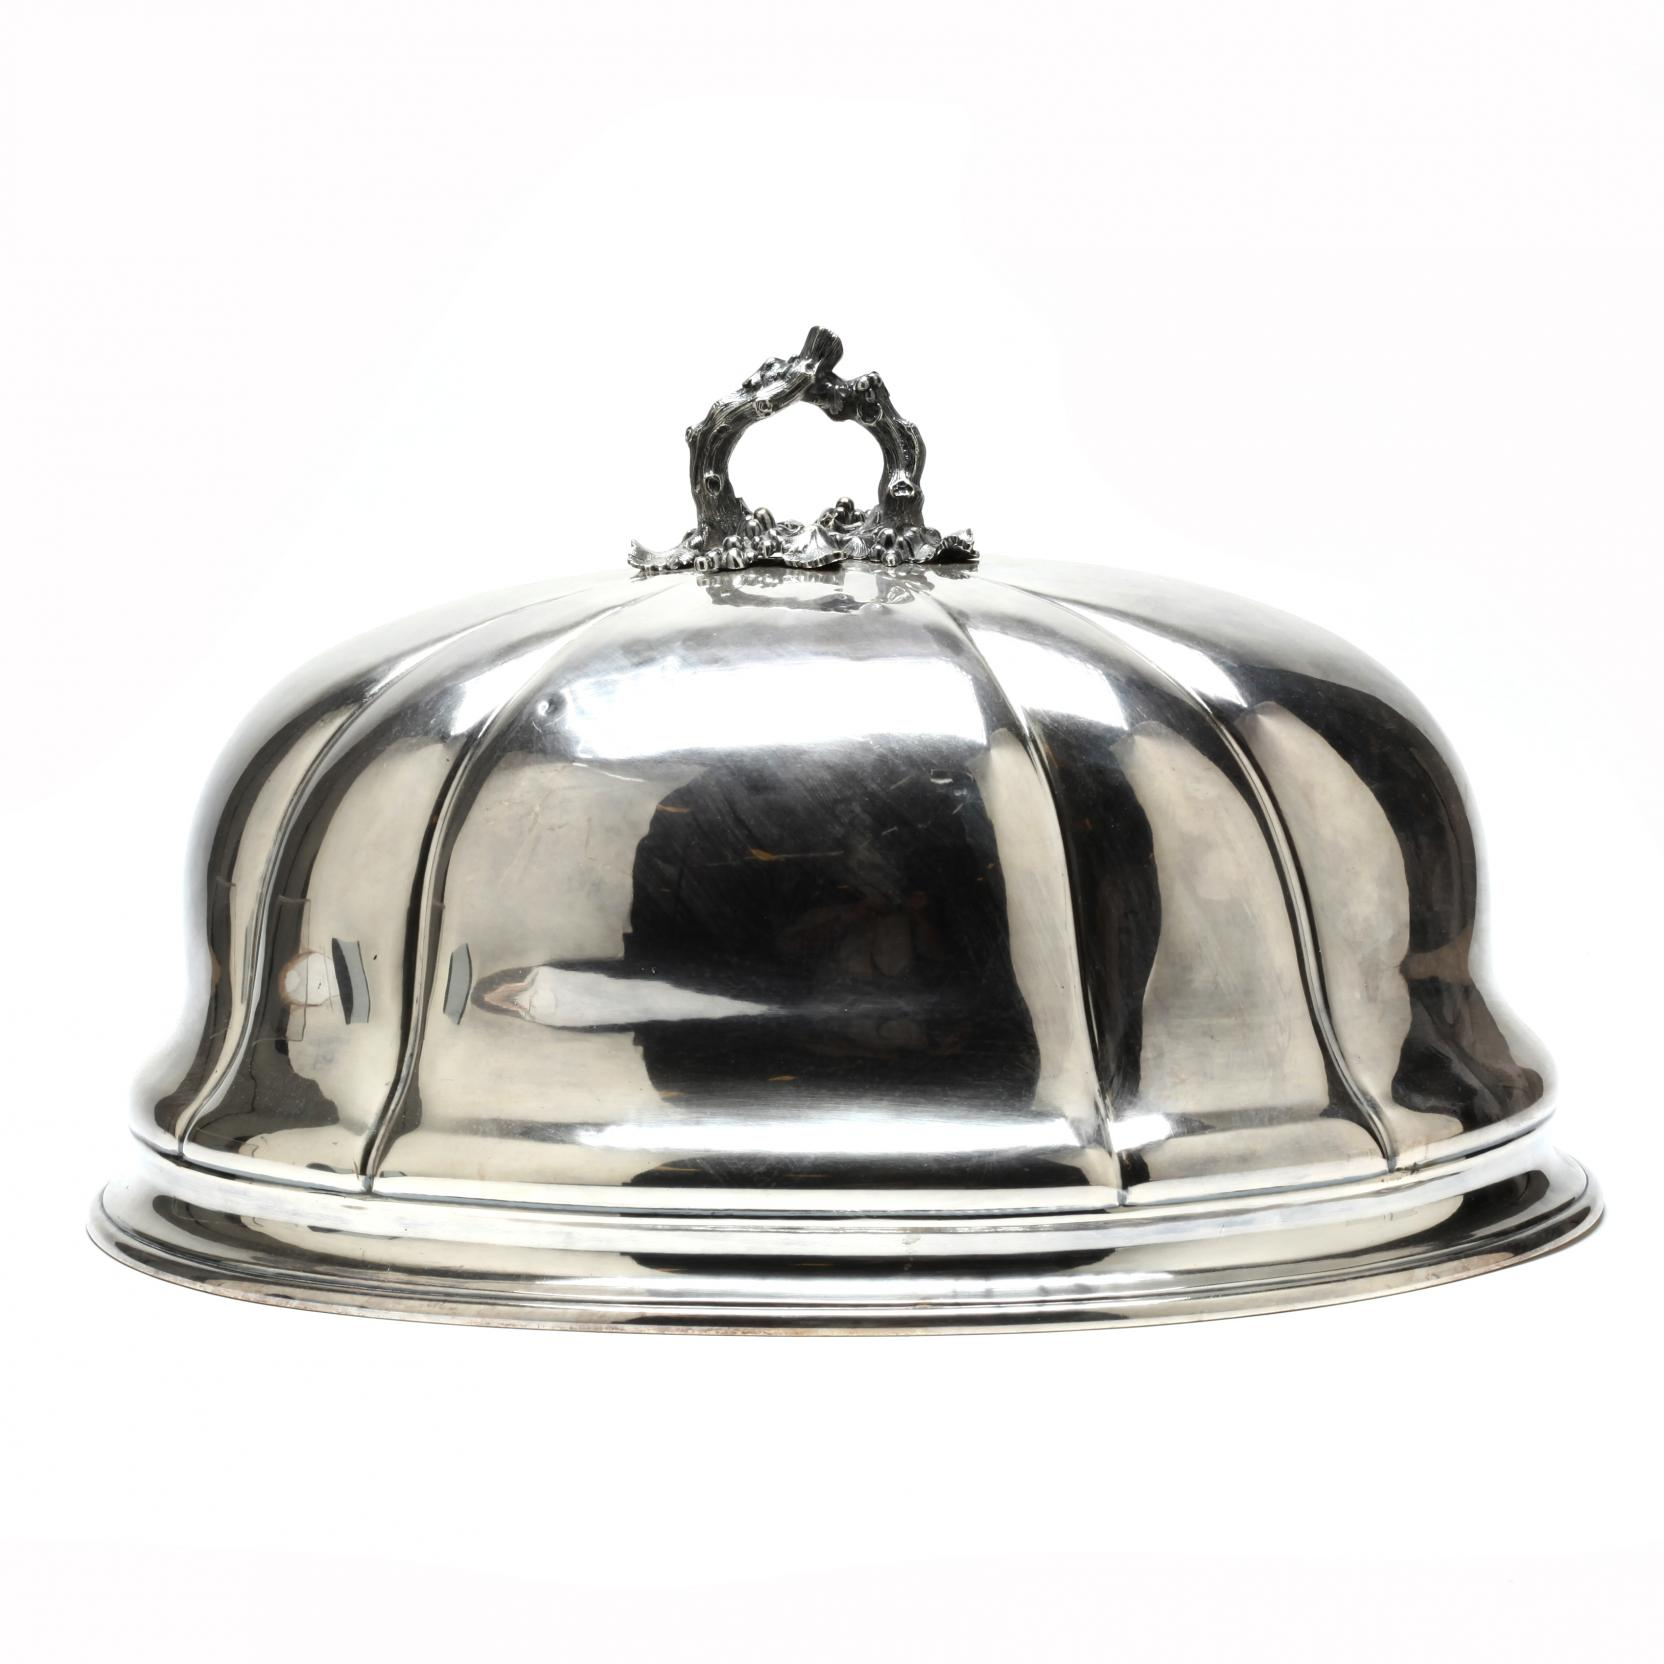 a-large-scottish-silverplate-roast-cover